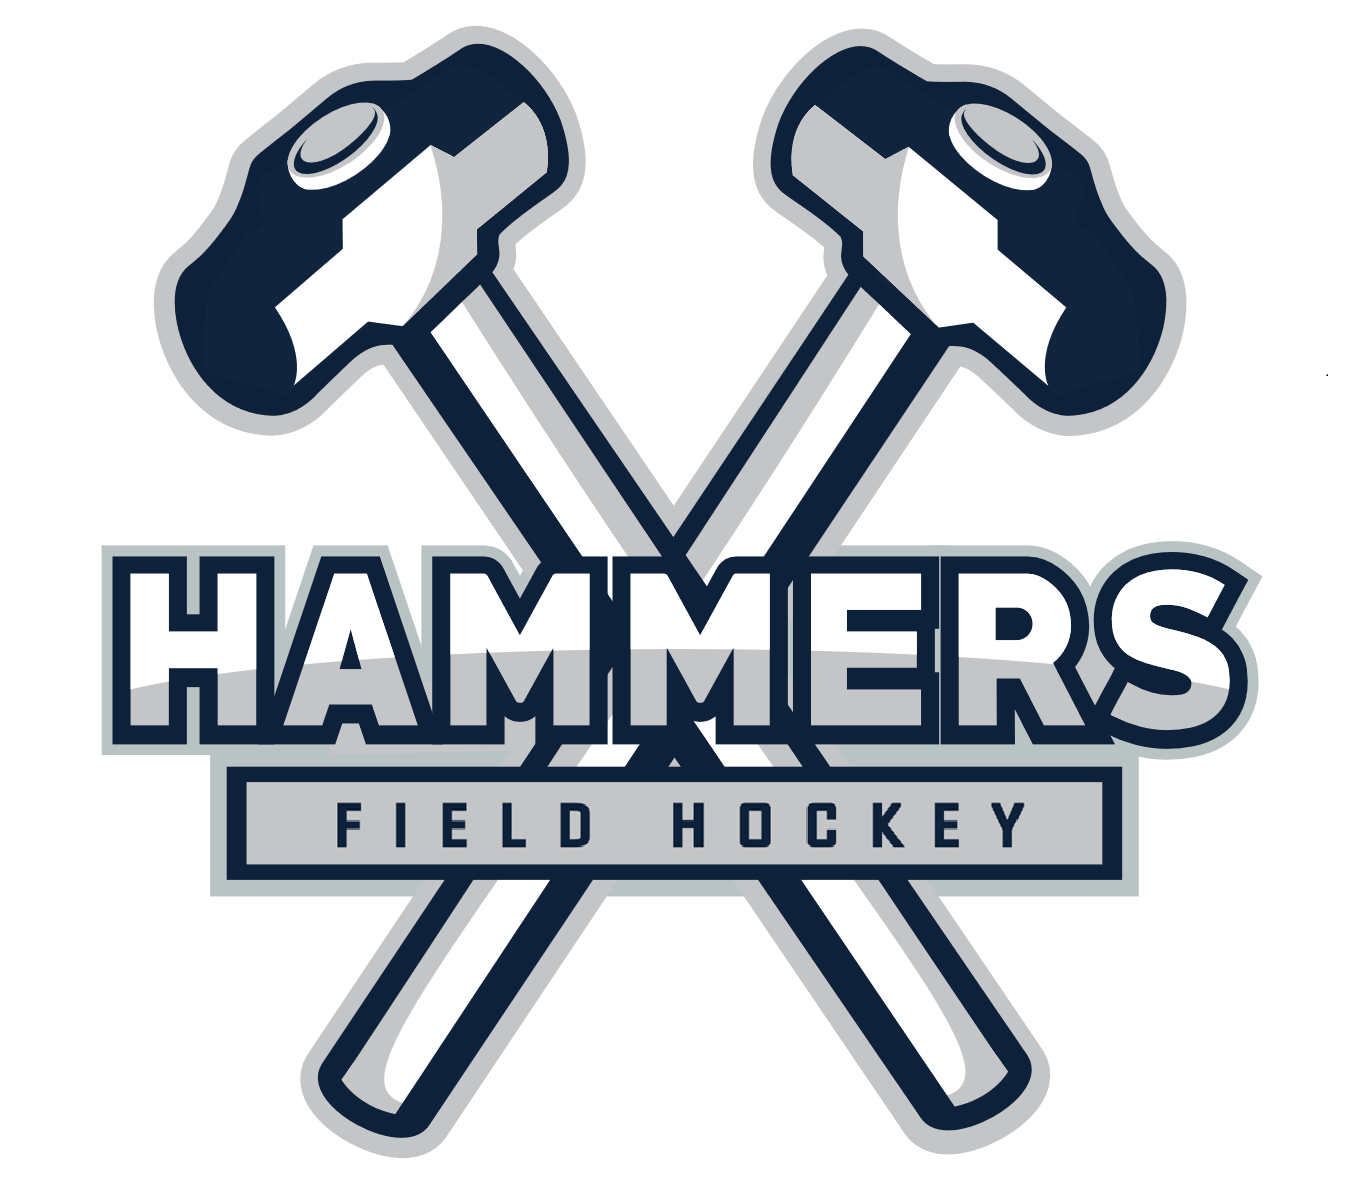 Screenshot_2019-05-31 New Hammers 41519 - New Hammers 41519 pdf.png